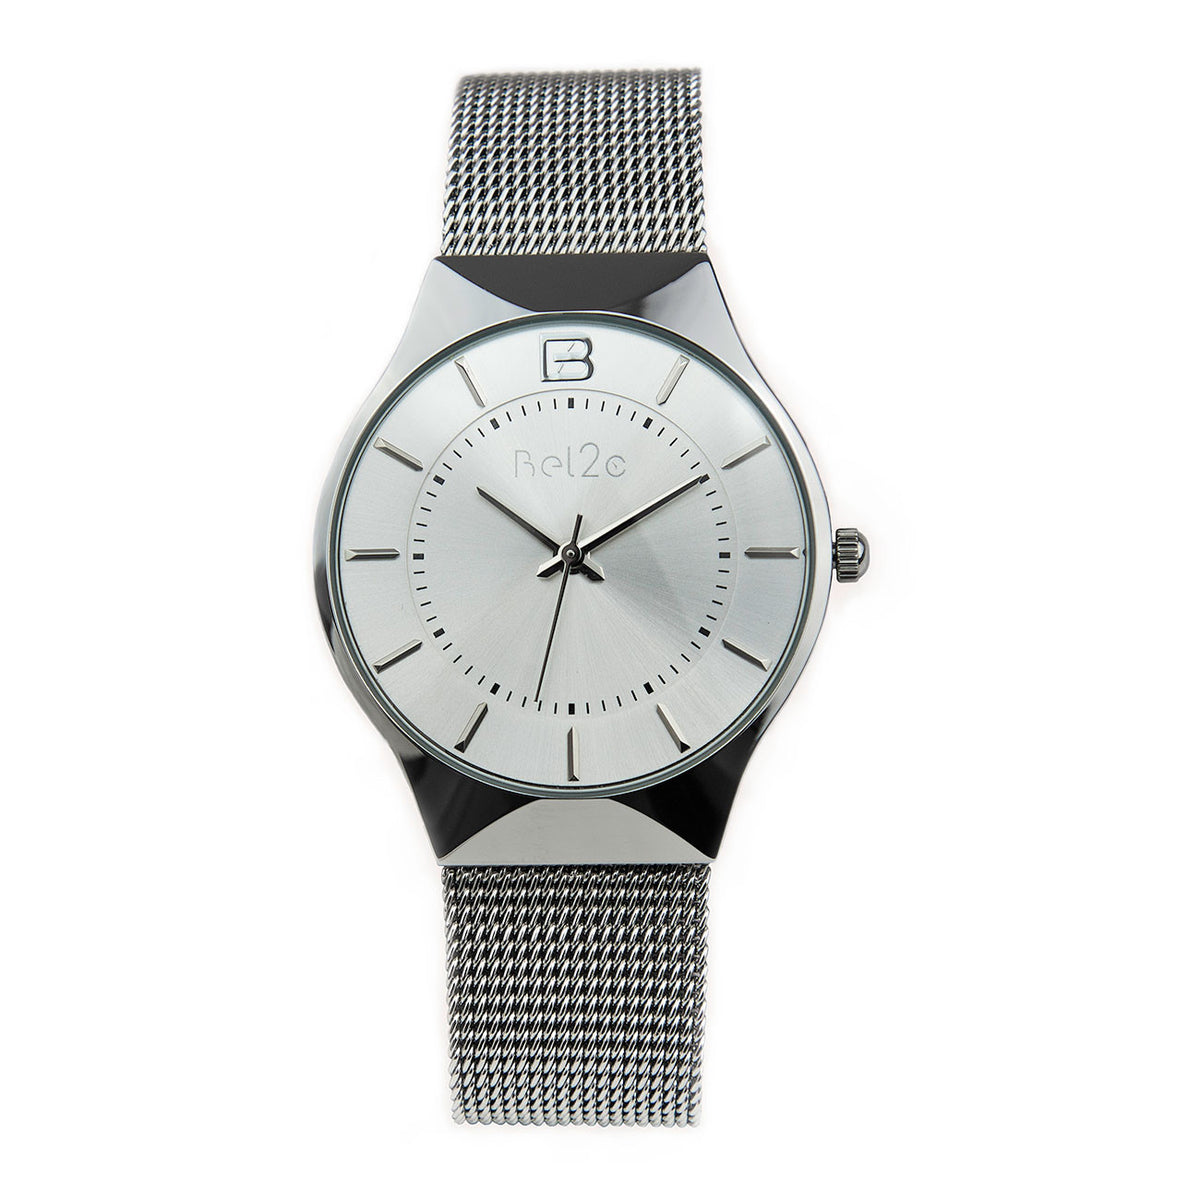 Bel2c Lagom Silver Watch with Silver Dial and Milanese Strap